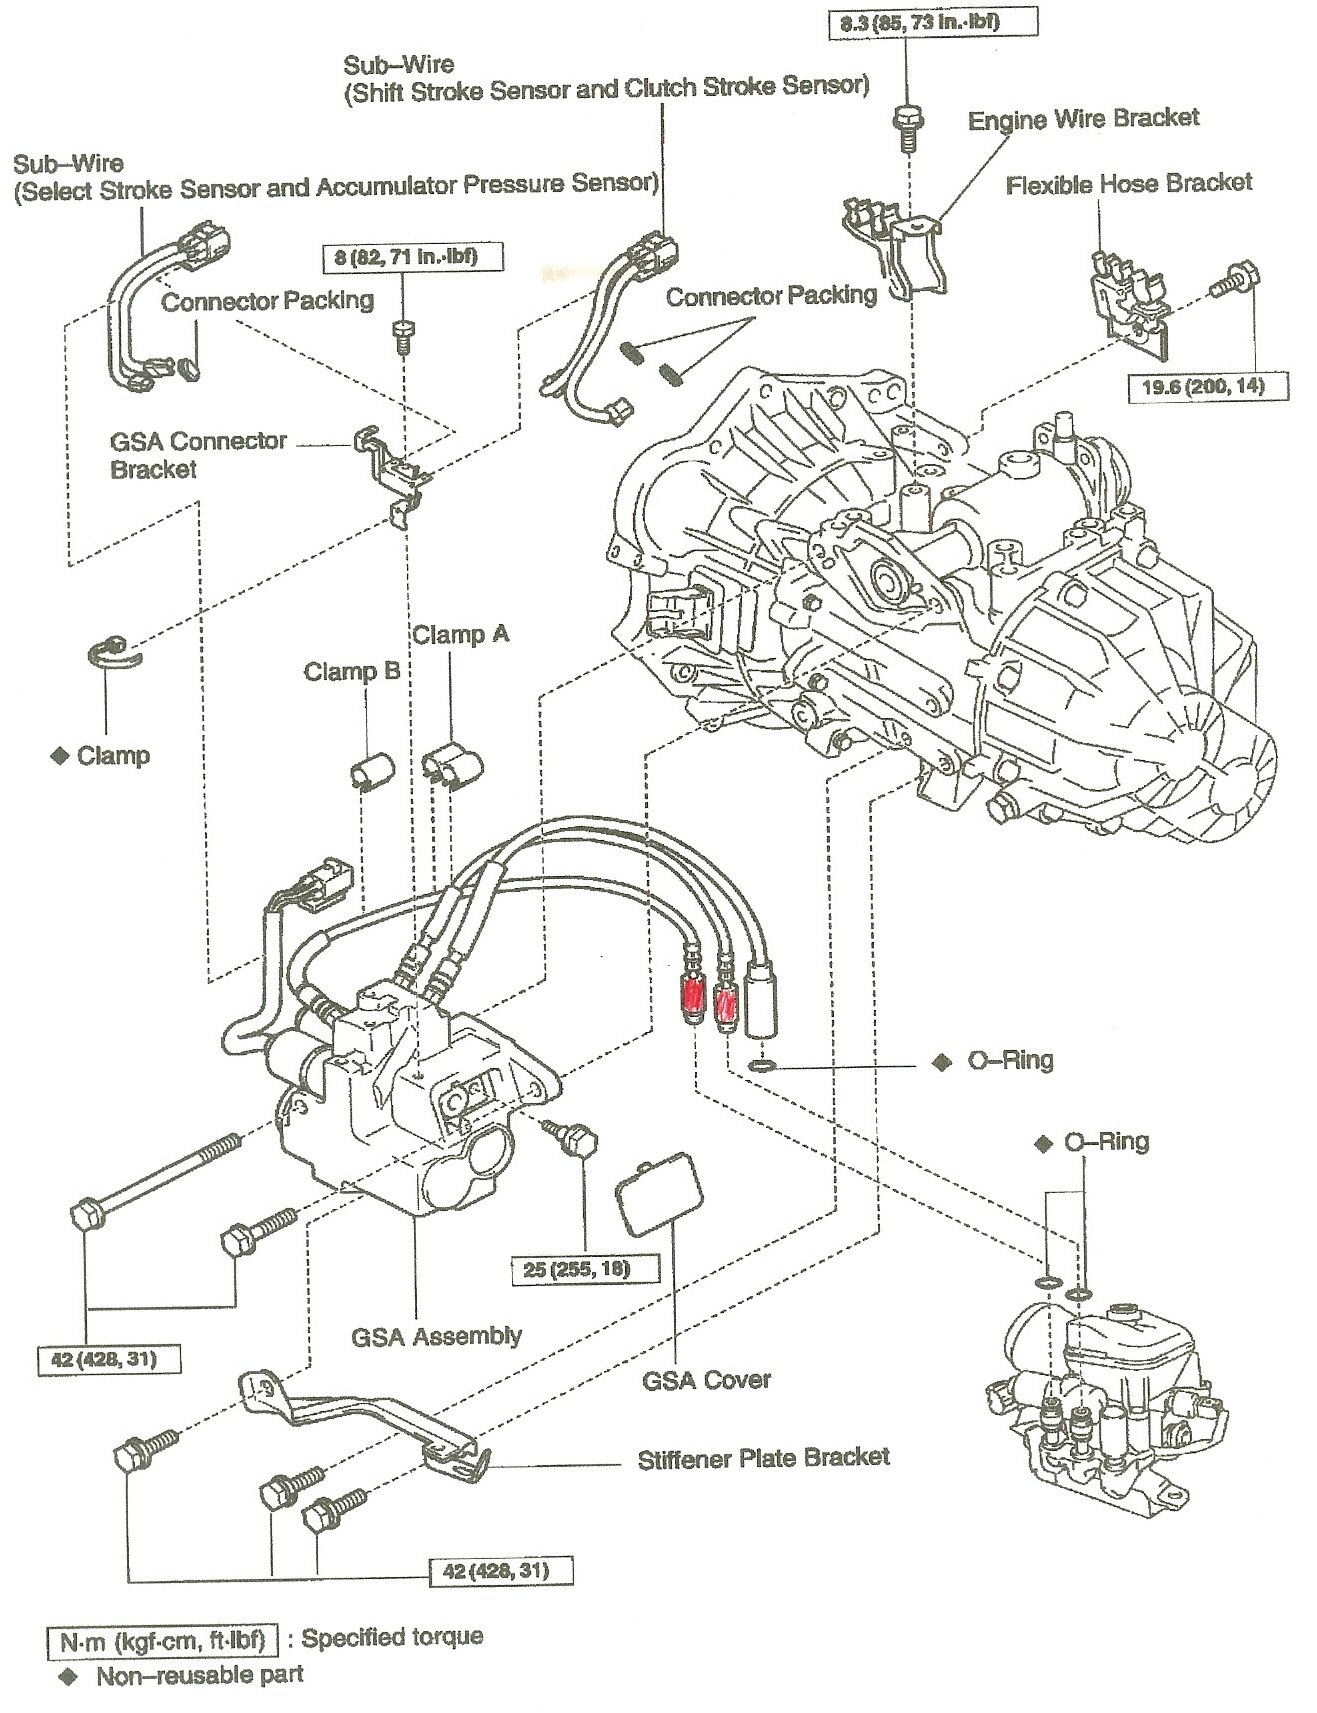 2001 Mr2 Spyder Reverse Wiring Diagram